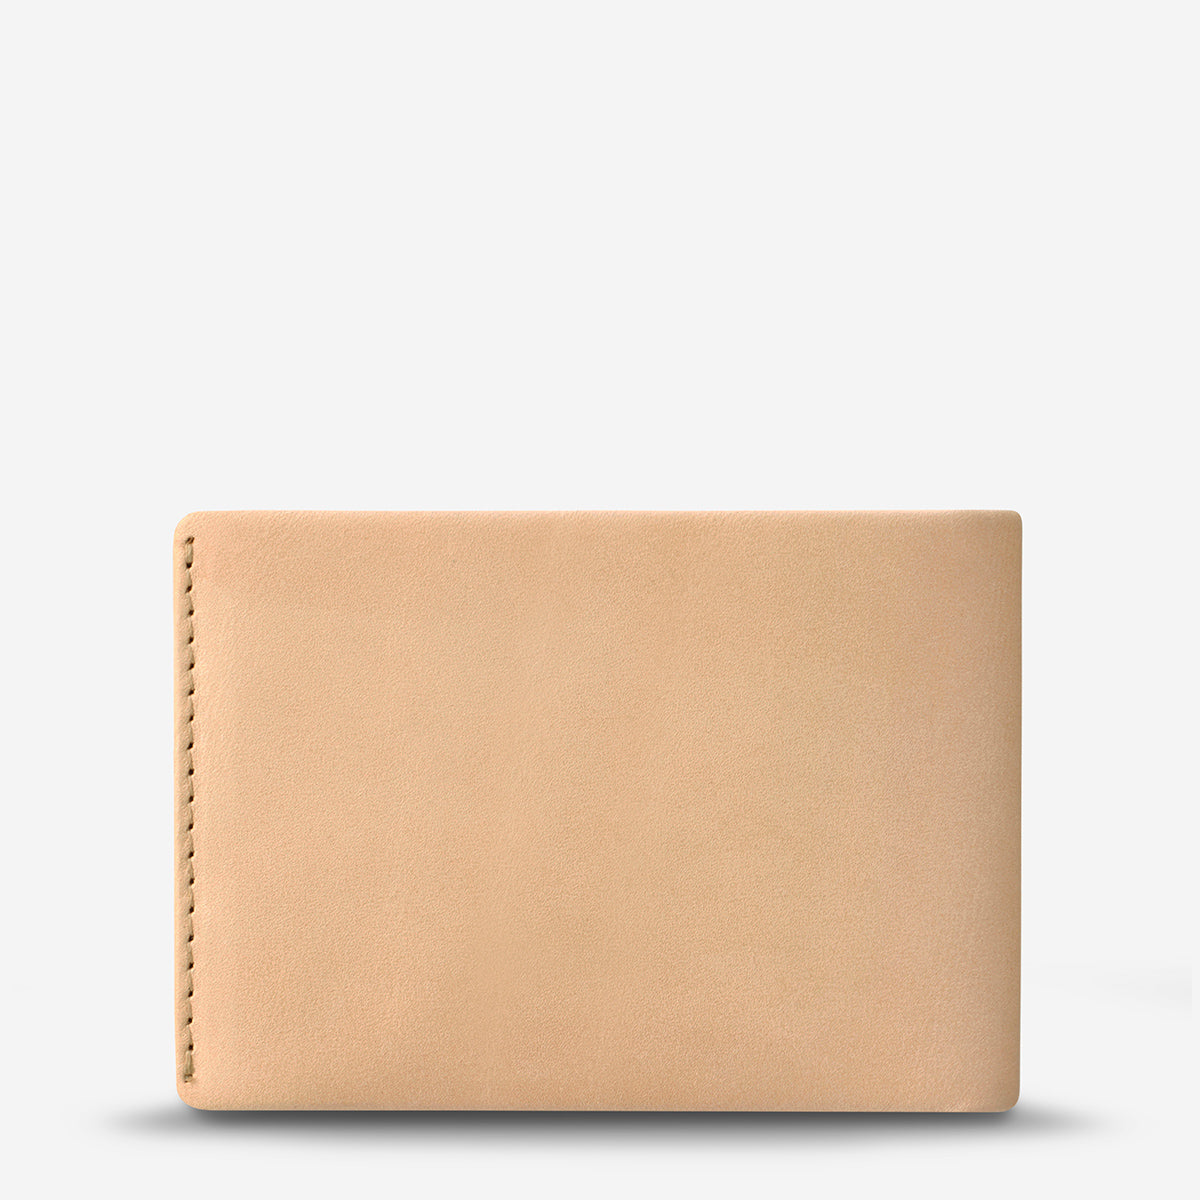 Status Anxiety Otis Men's Leather Bi-Fold Wallet - Tan